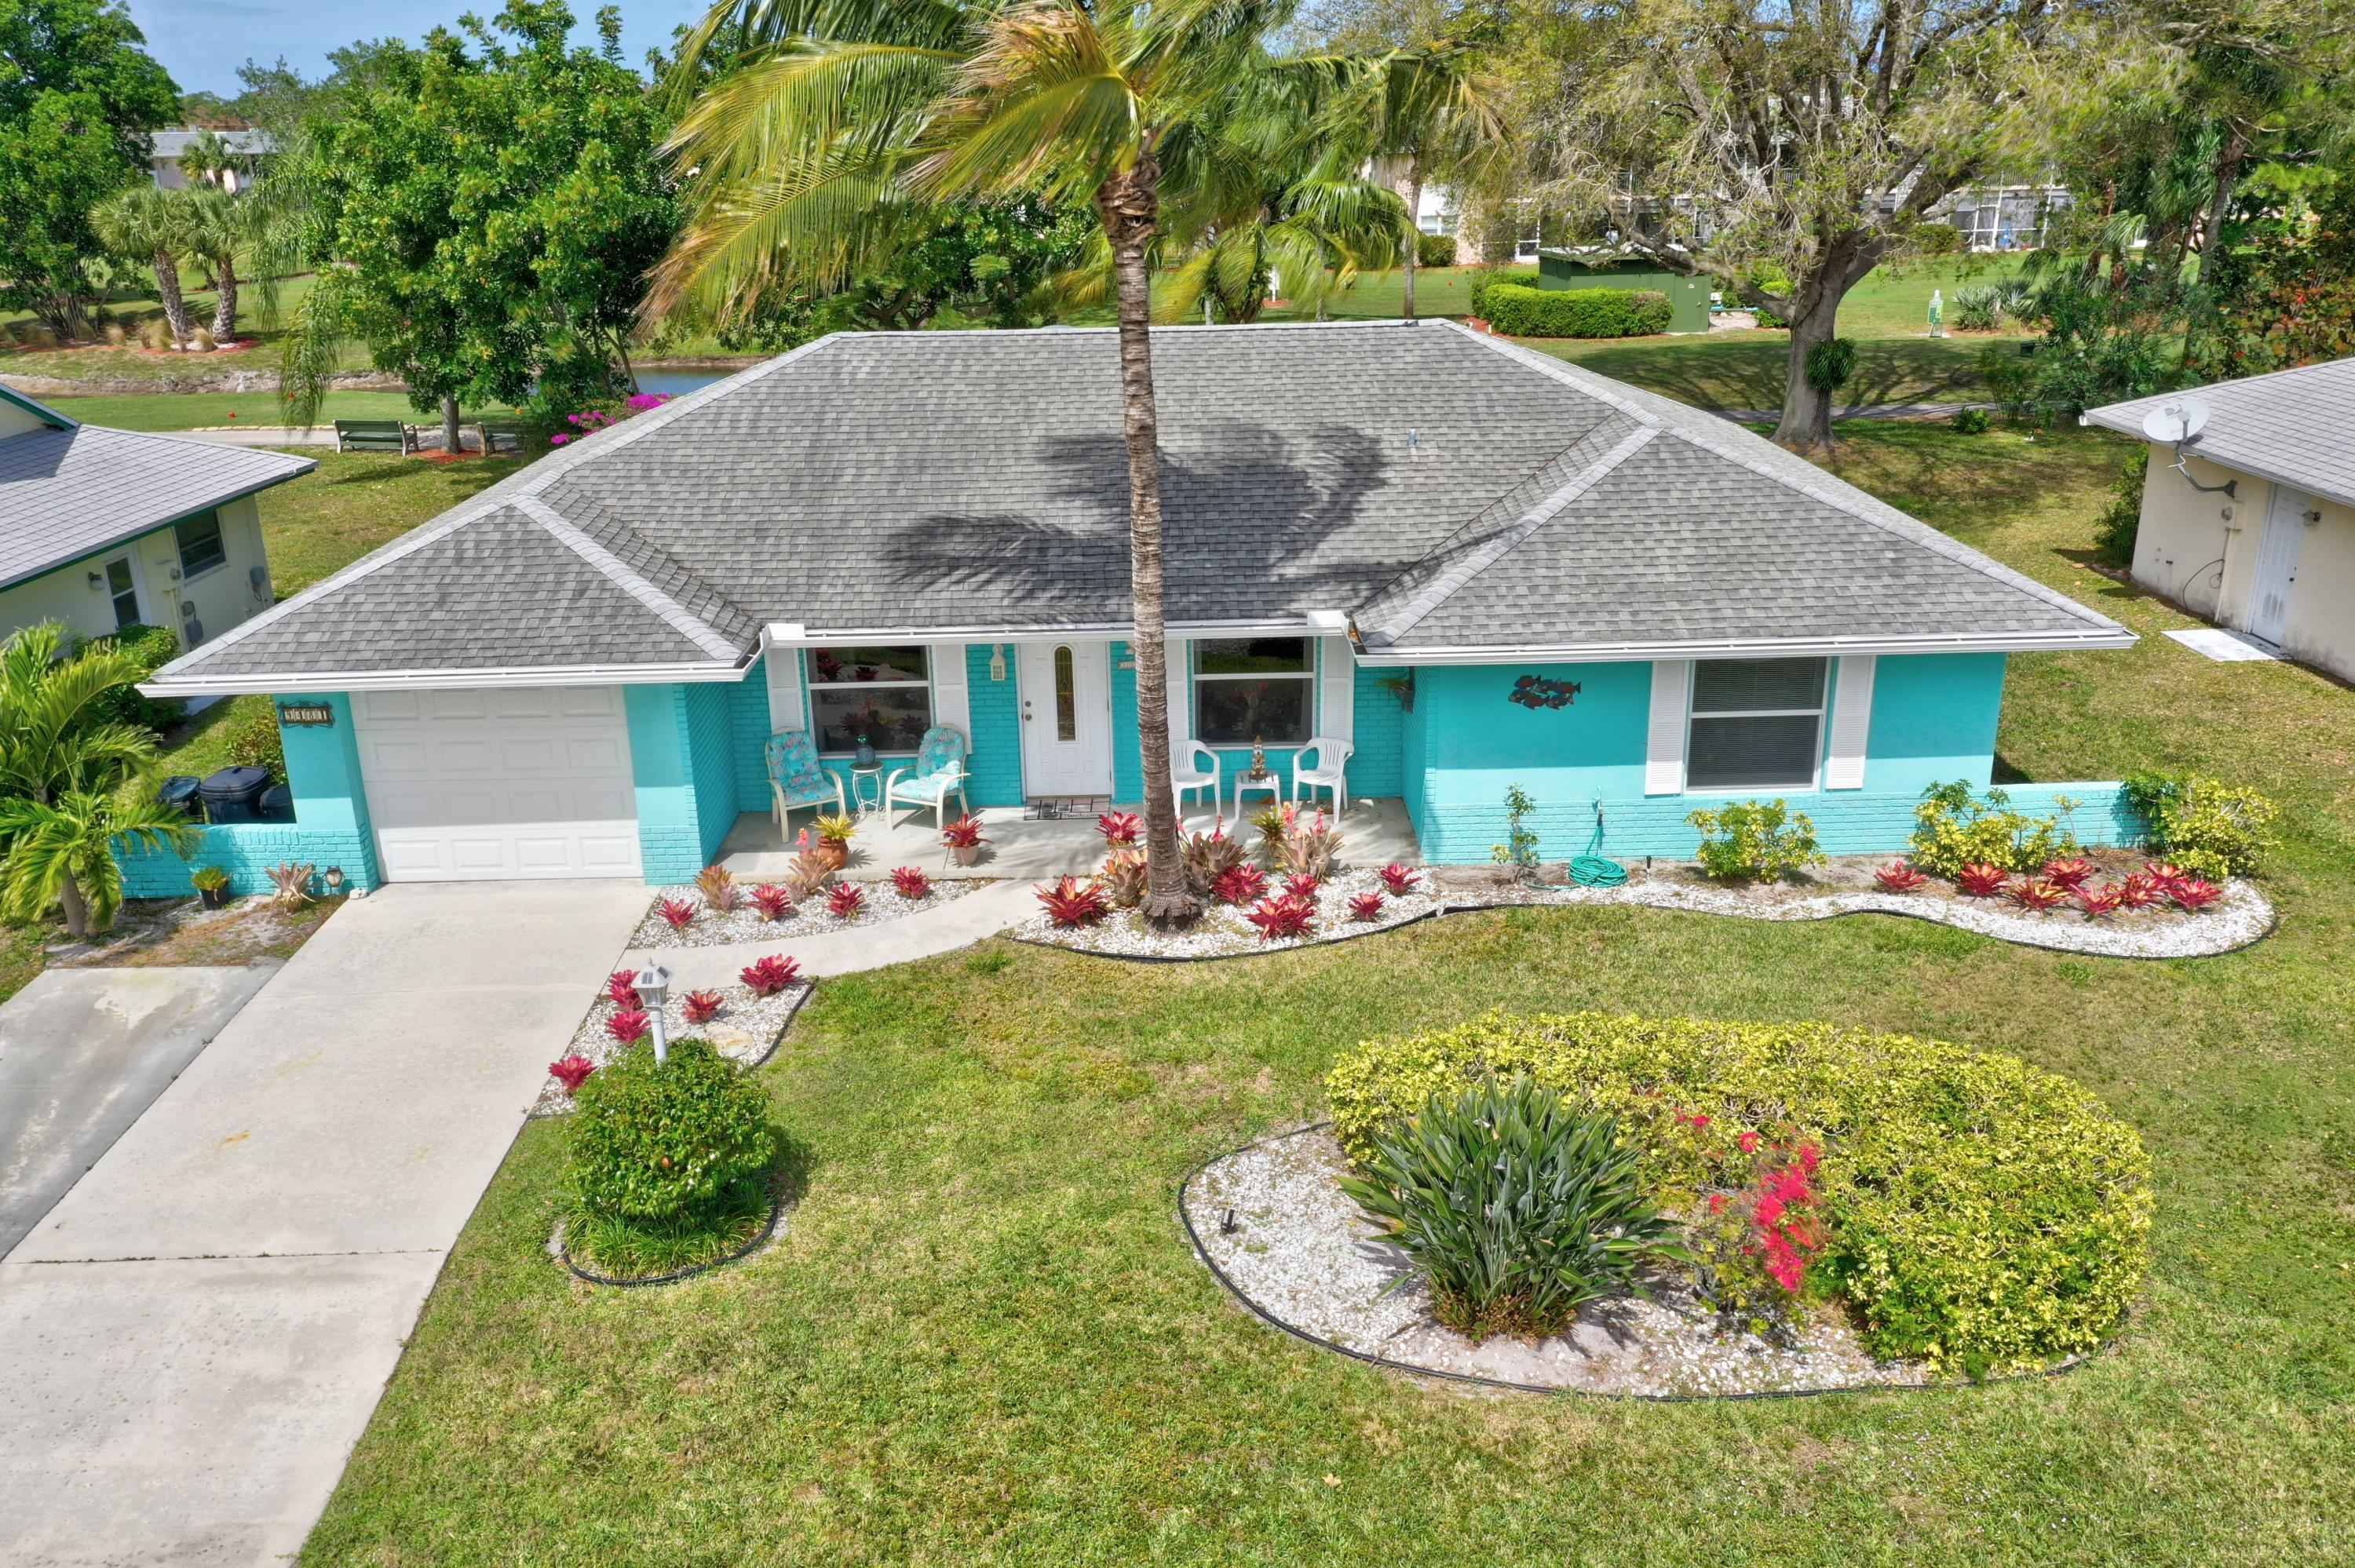 New Home for sale at 9481 Little Club Way in Tequesta